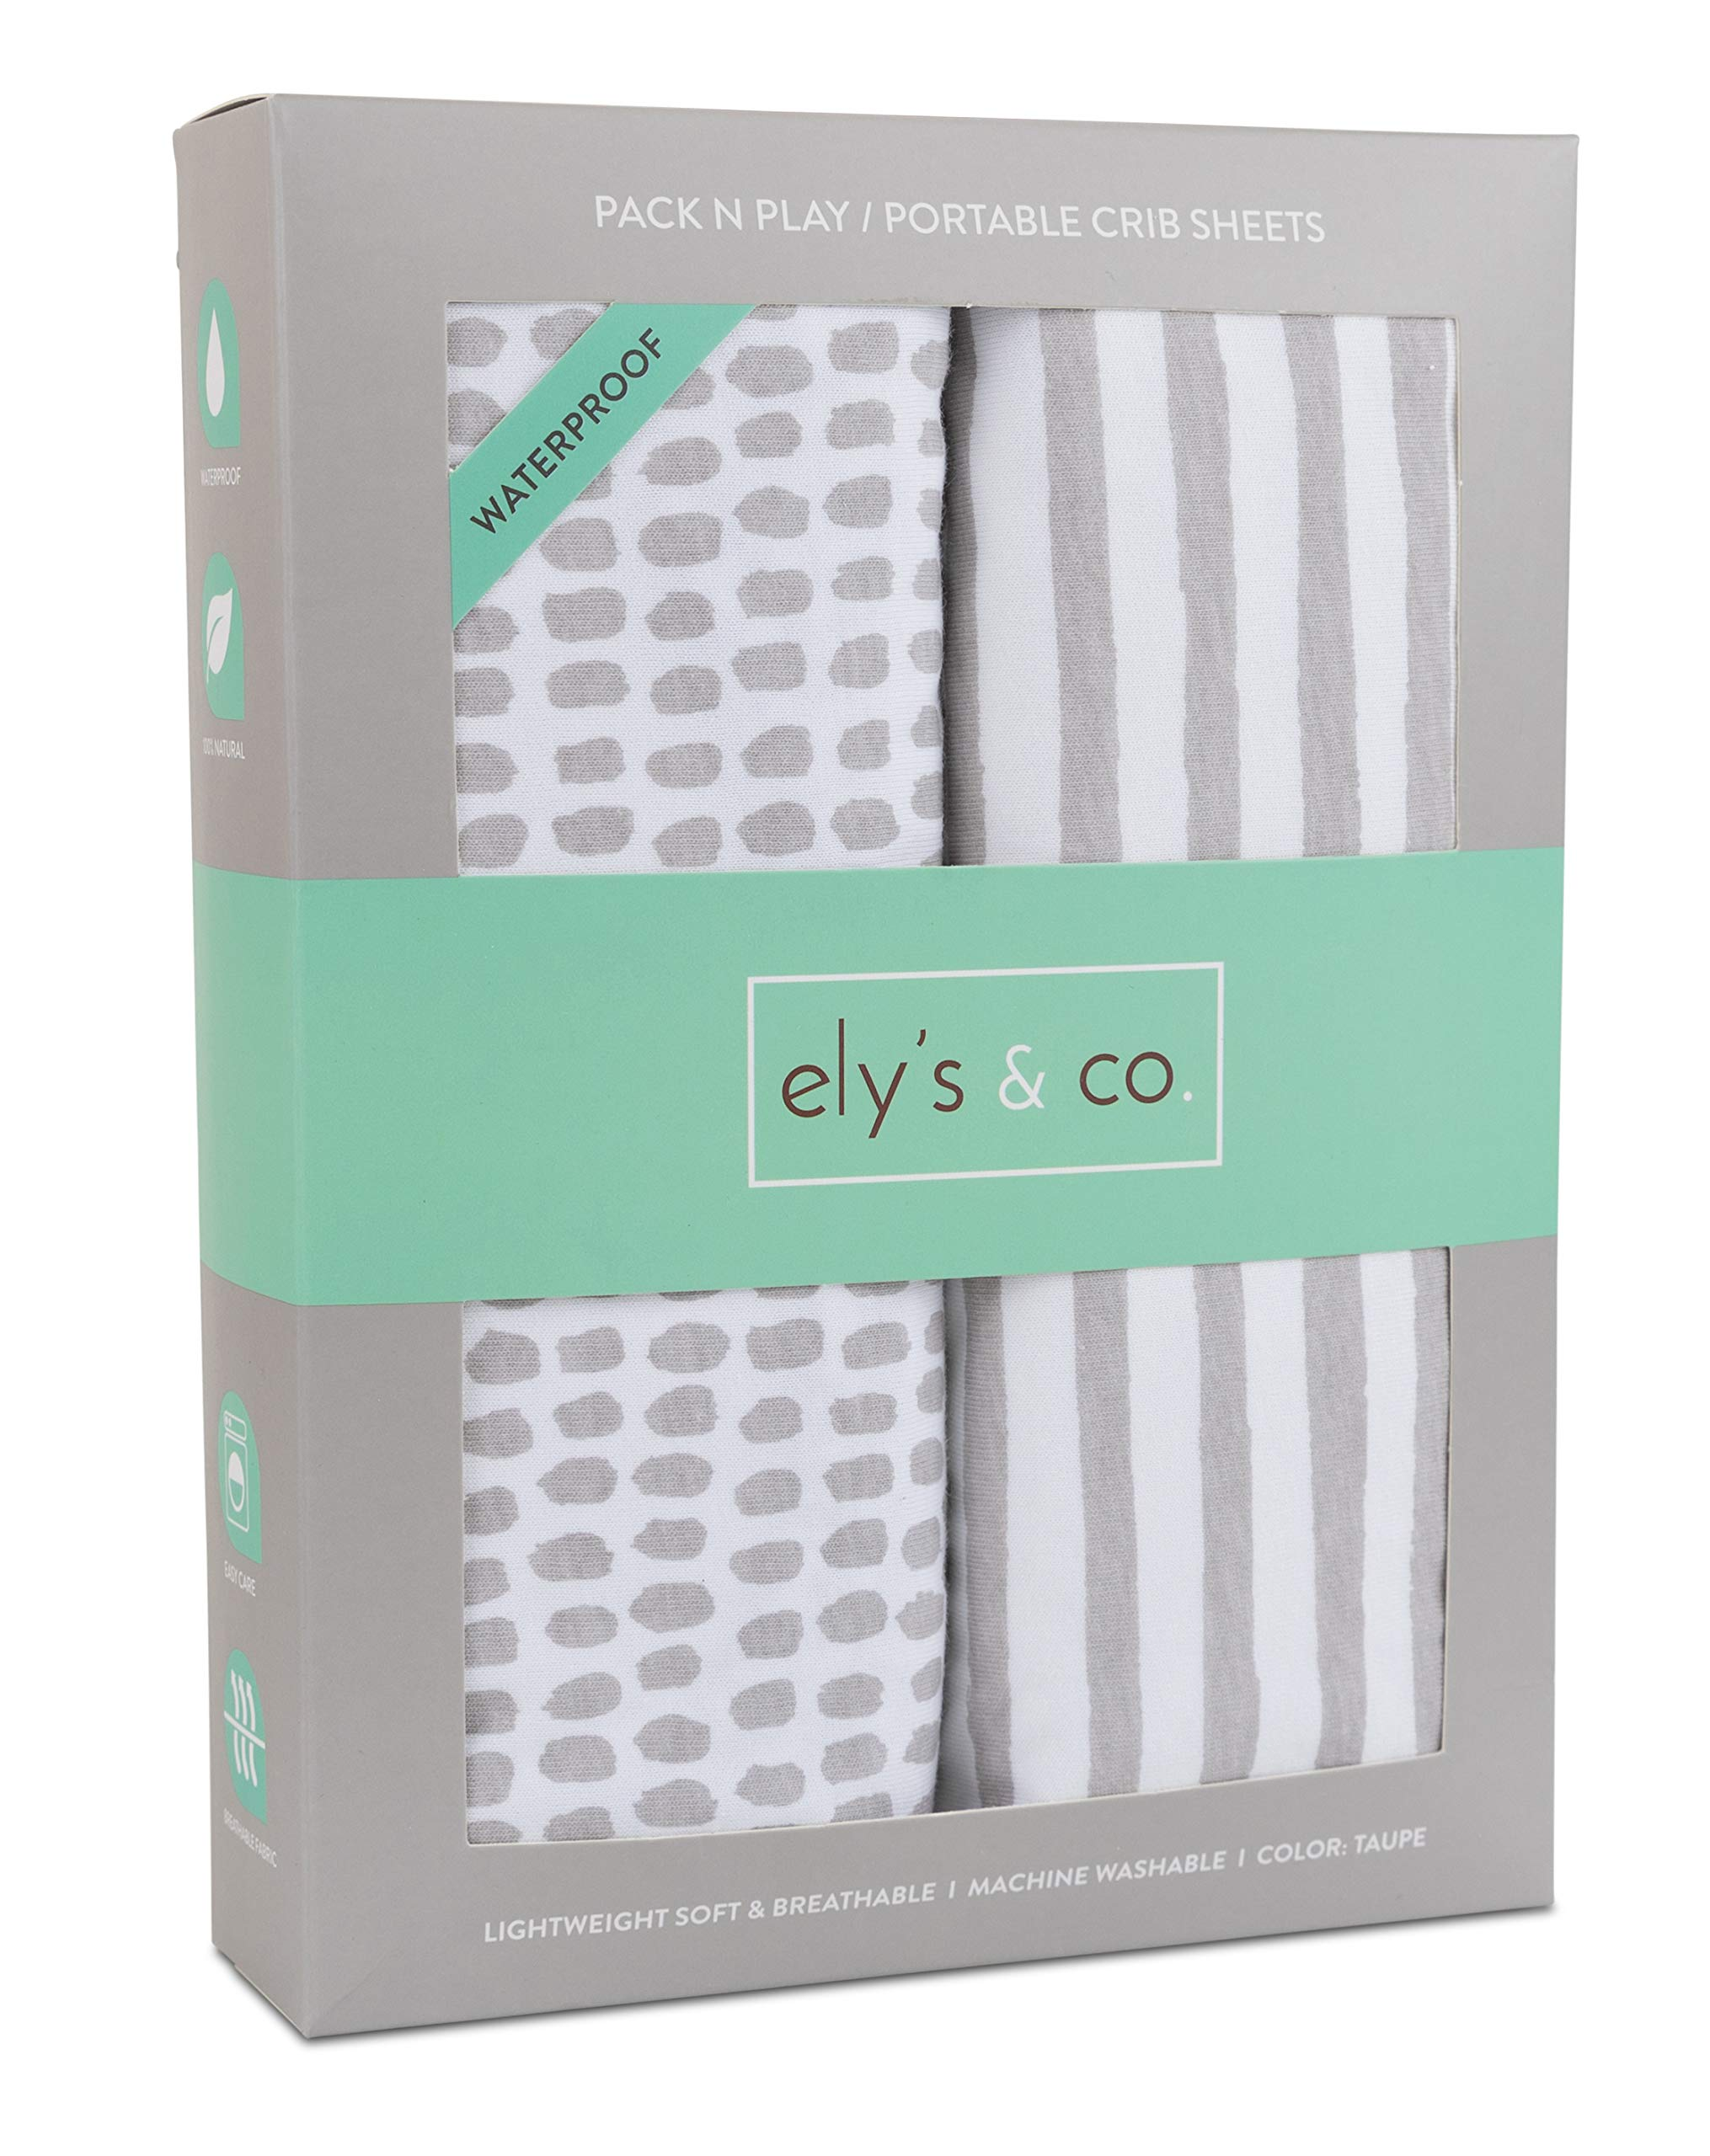 Waterproof Pack N Play/Mini Portable Crib Sheet with Mattress Pad Cover Protection I Taupe Stripes and Splash by Ely's & Co.